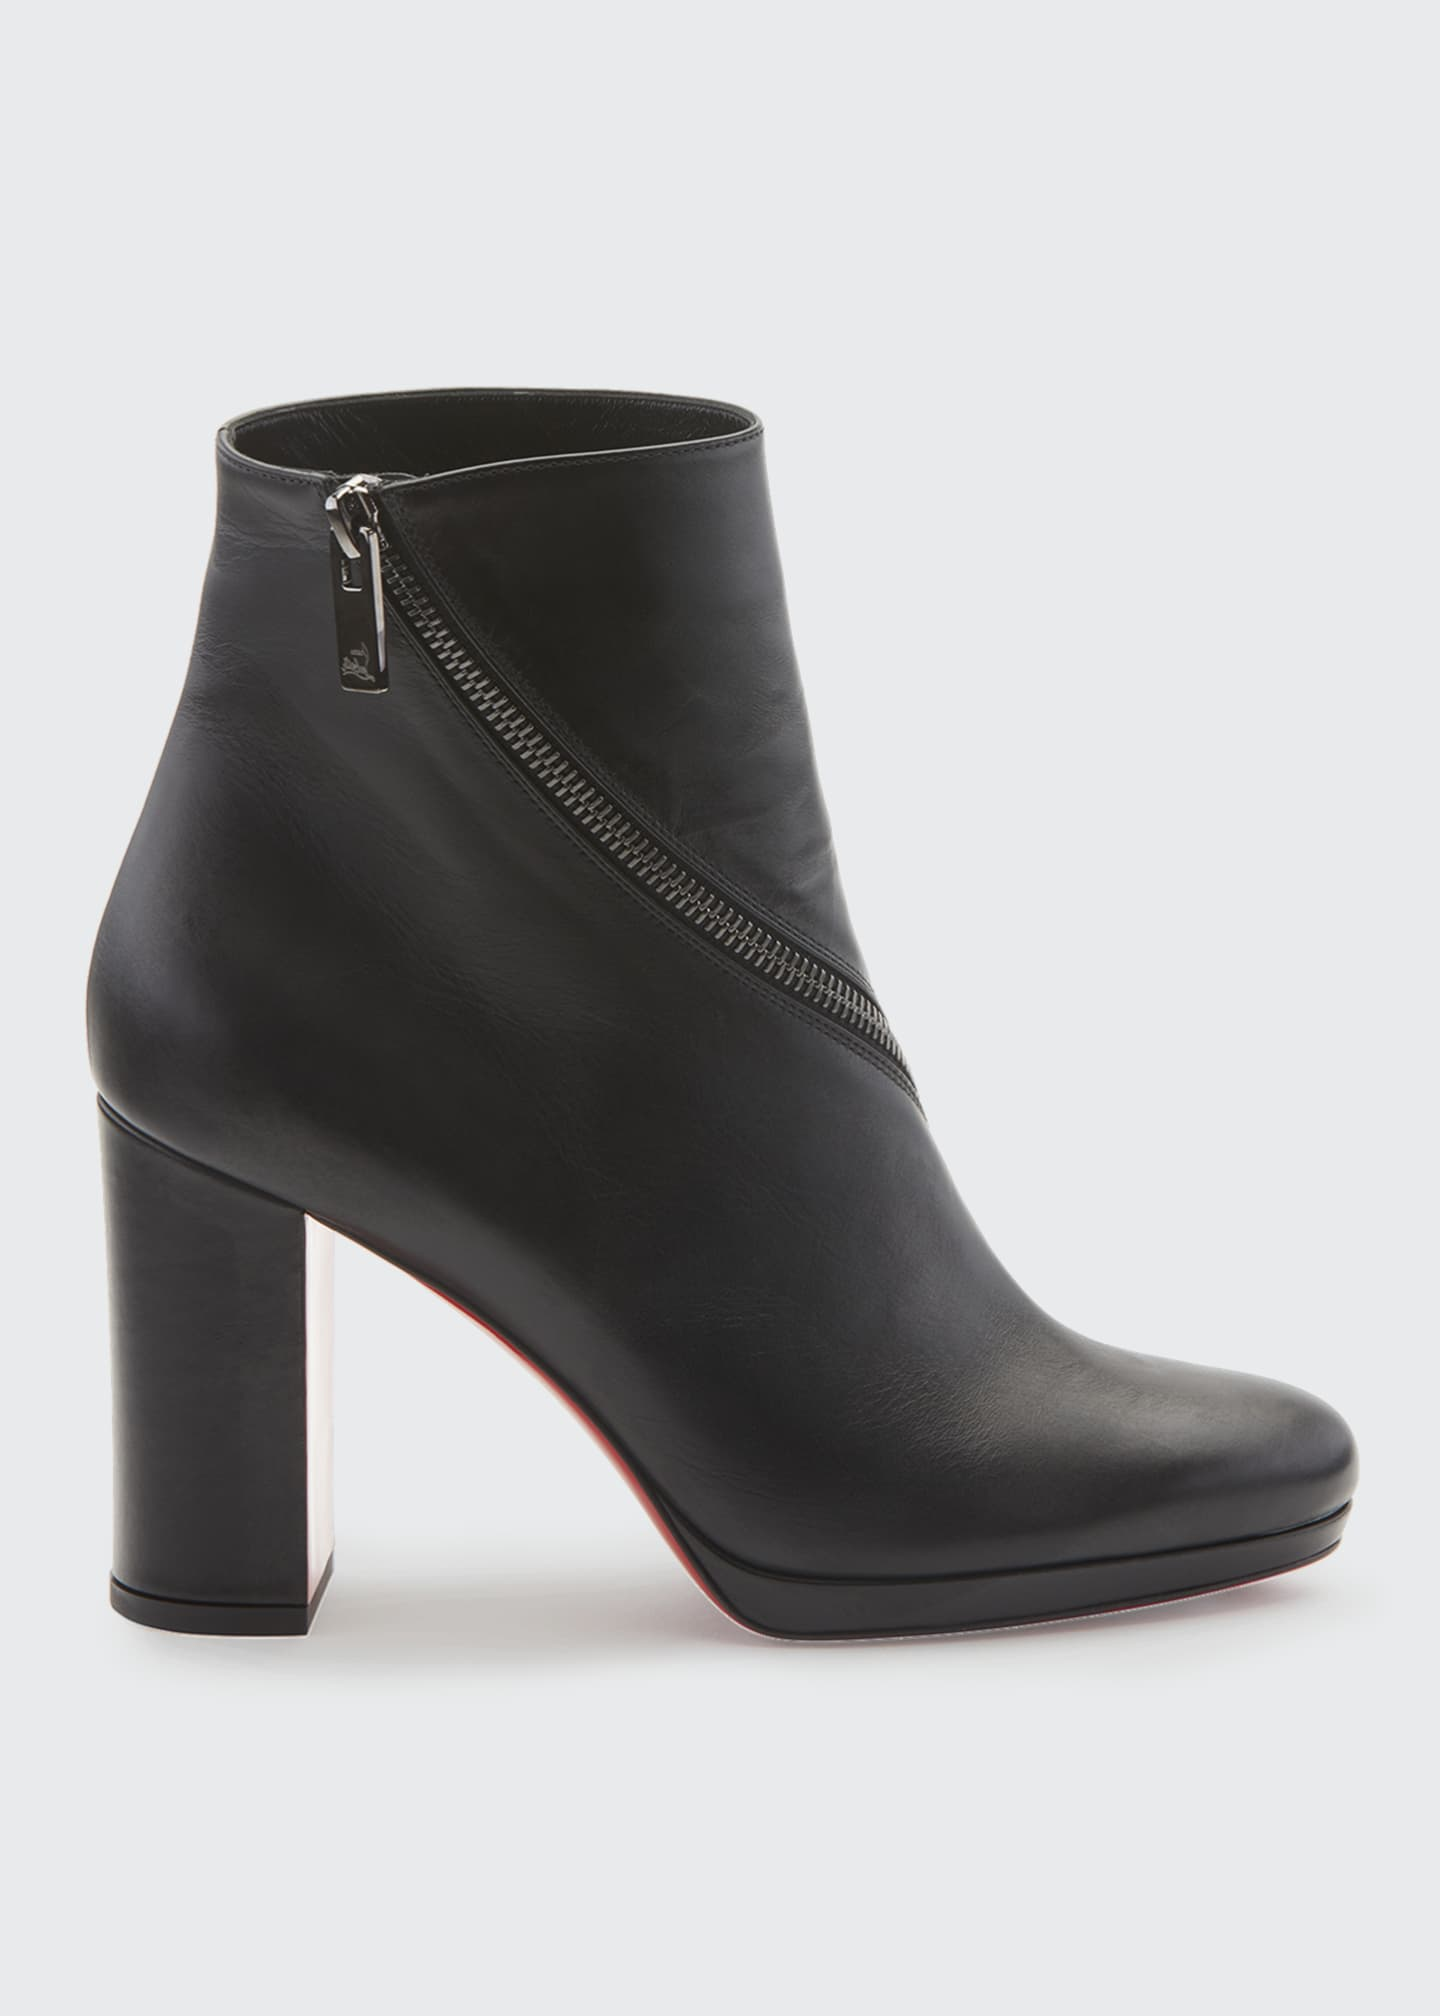 Christian Louboutin Birgitta Red Sole Zip Booties